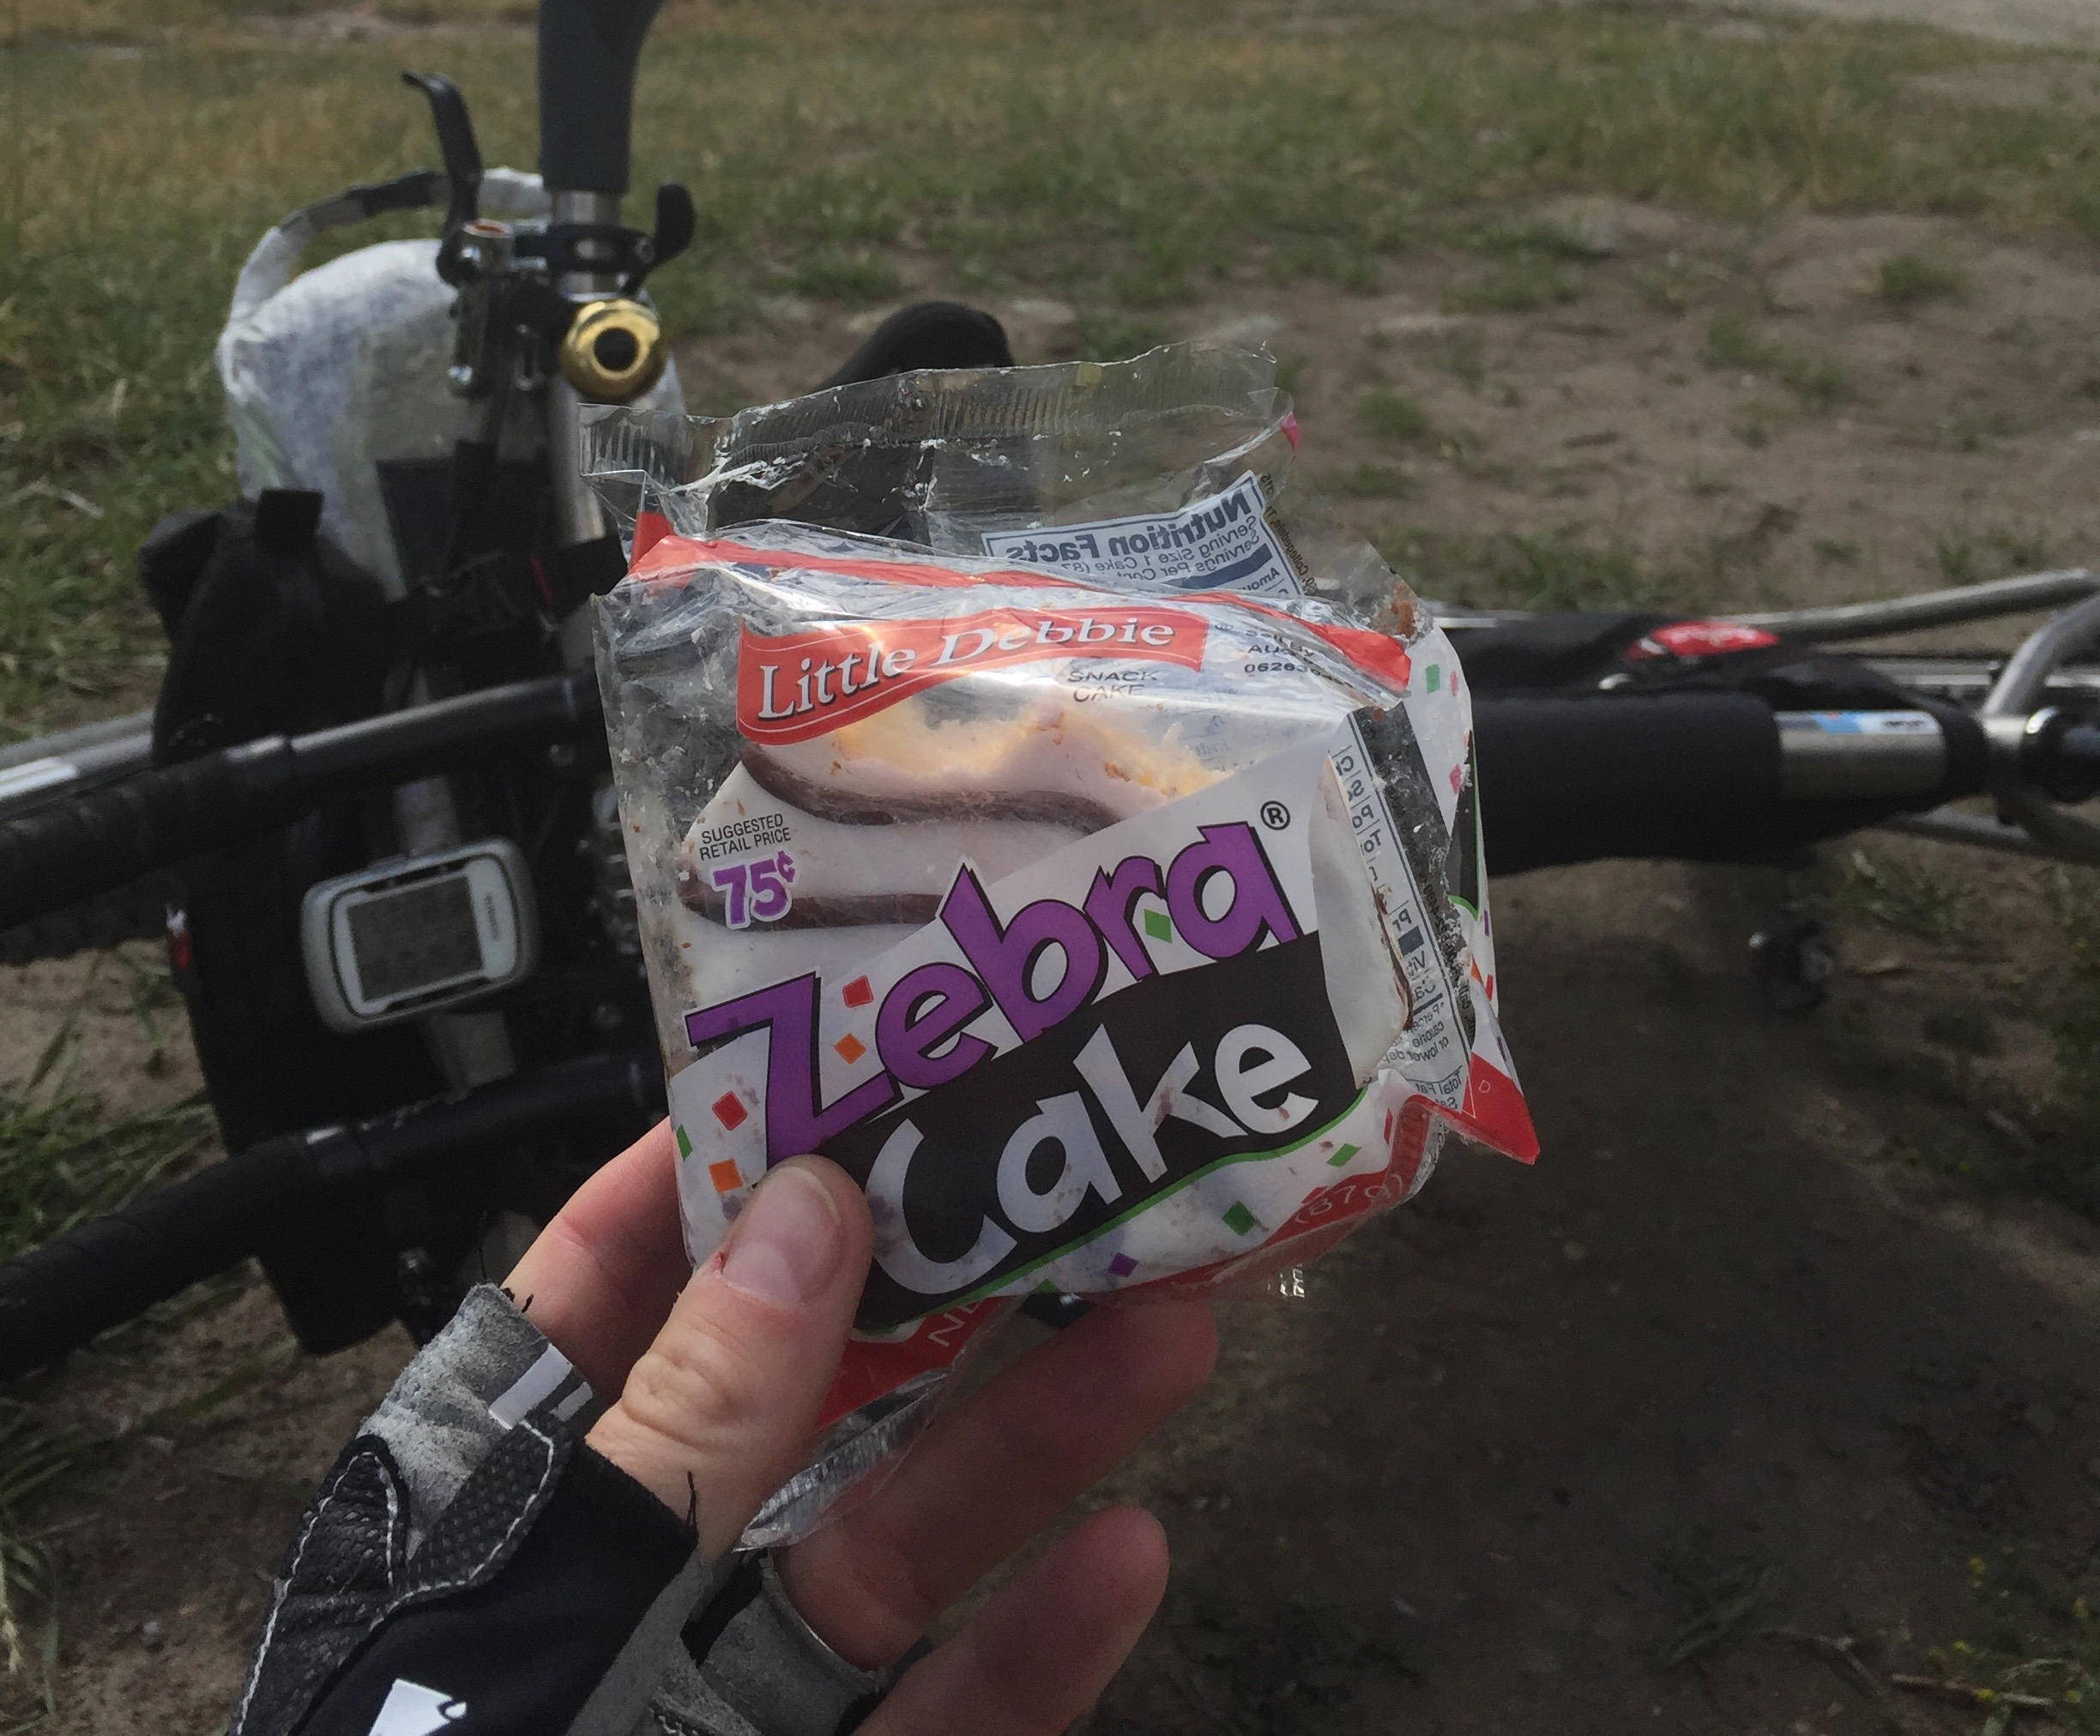 Just outside of Helena, Nick and I stopped for snacks at the summit of a climb. This Zebra cake made me so happy because it reminded me of good friend Kate Powlison. I don't remember why I have this association but it makes me smile every time.